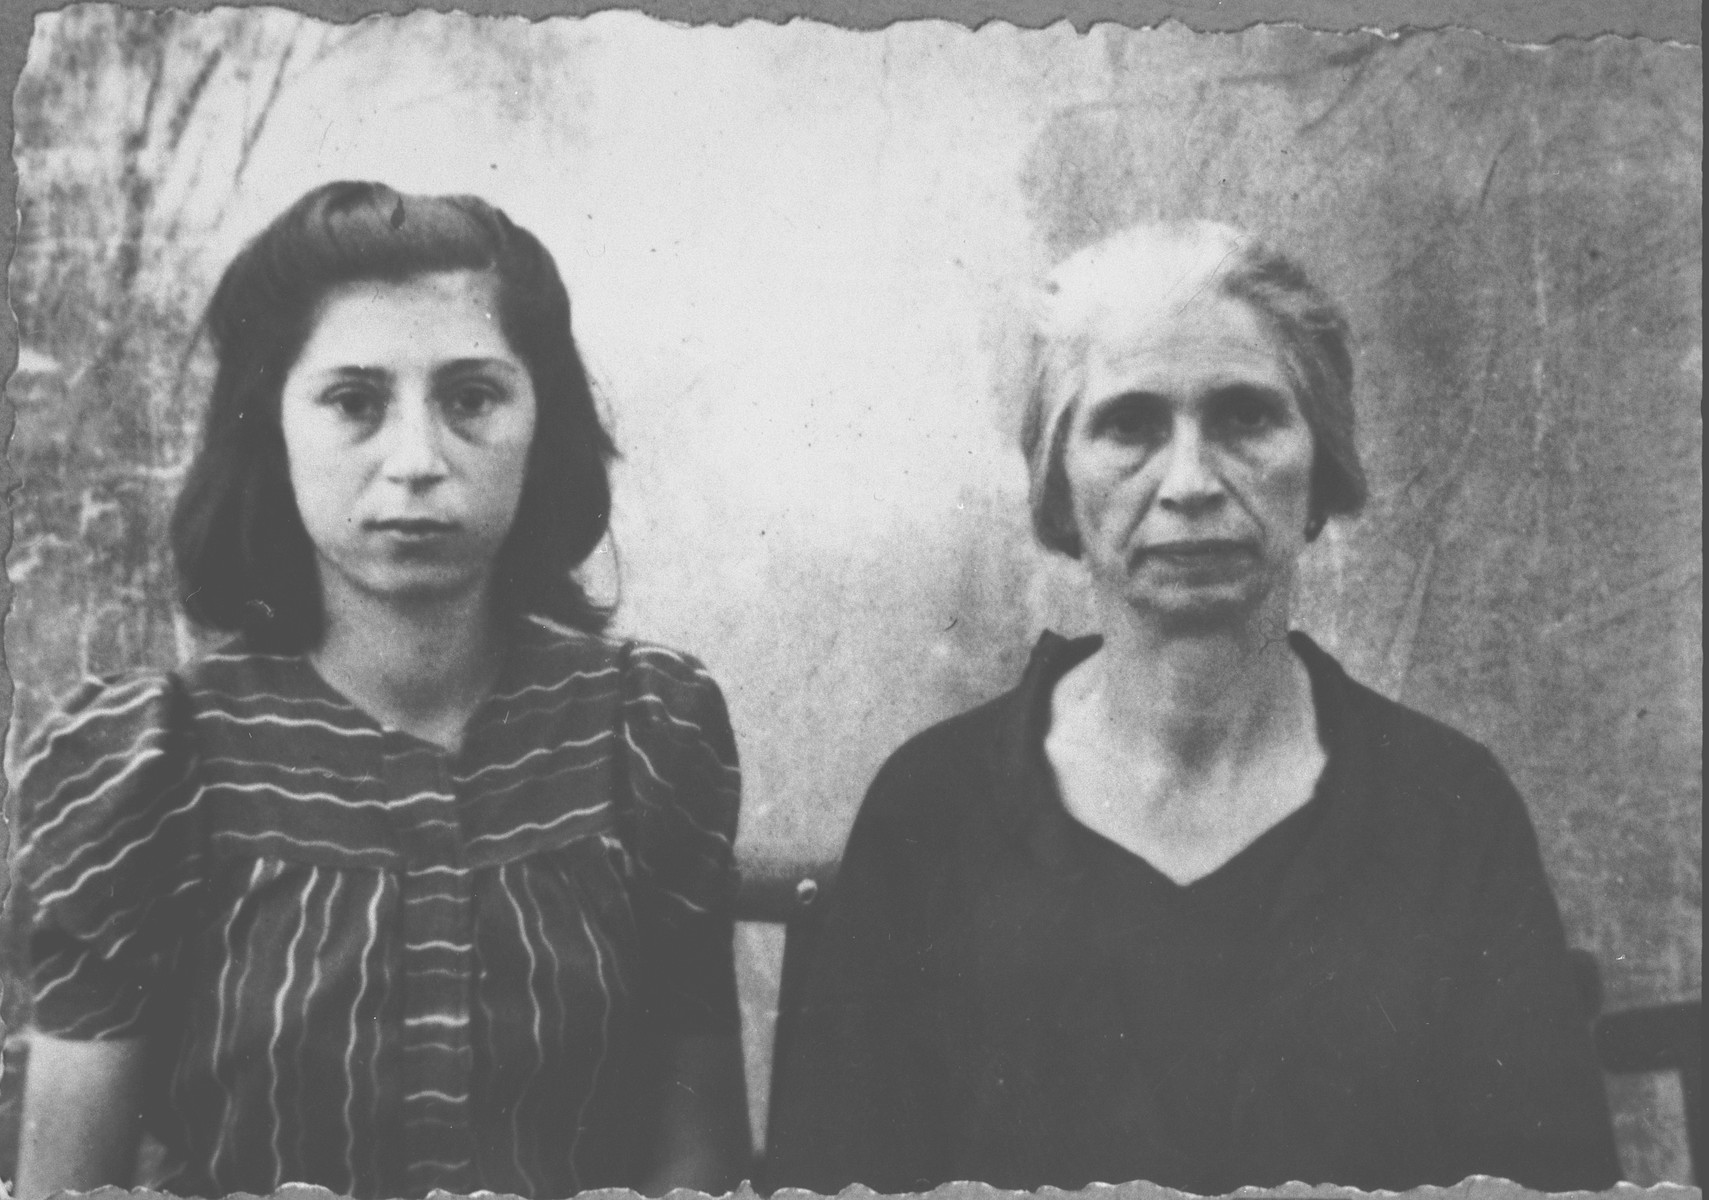 Portrait of Sara Israel, [wife of Yakov Israel] and Alegra Israel.  Alegra is the daughter of Yakov Israel.  Alegra was a student.  They lived at Dalmatinska 70 in Bitola.